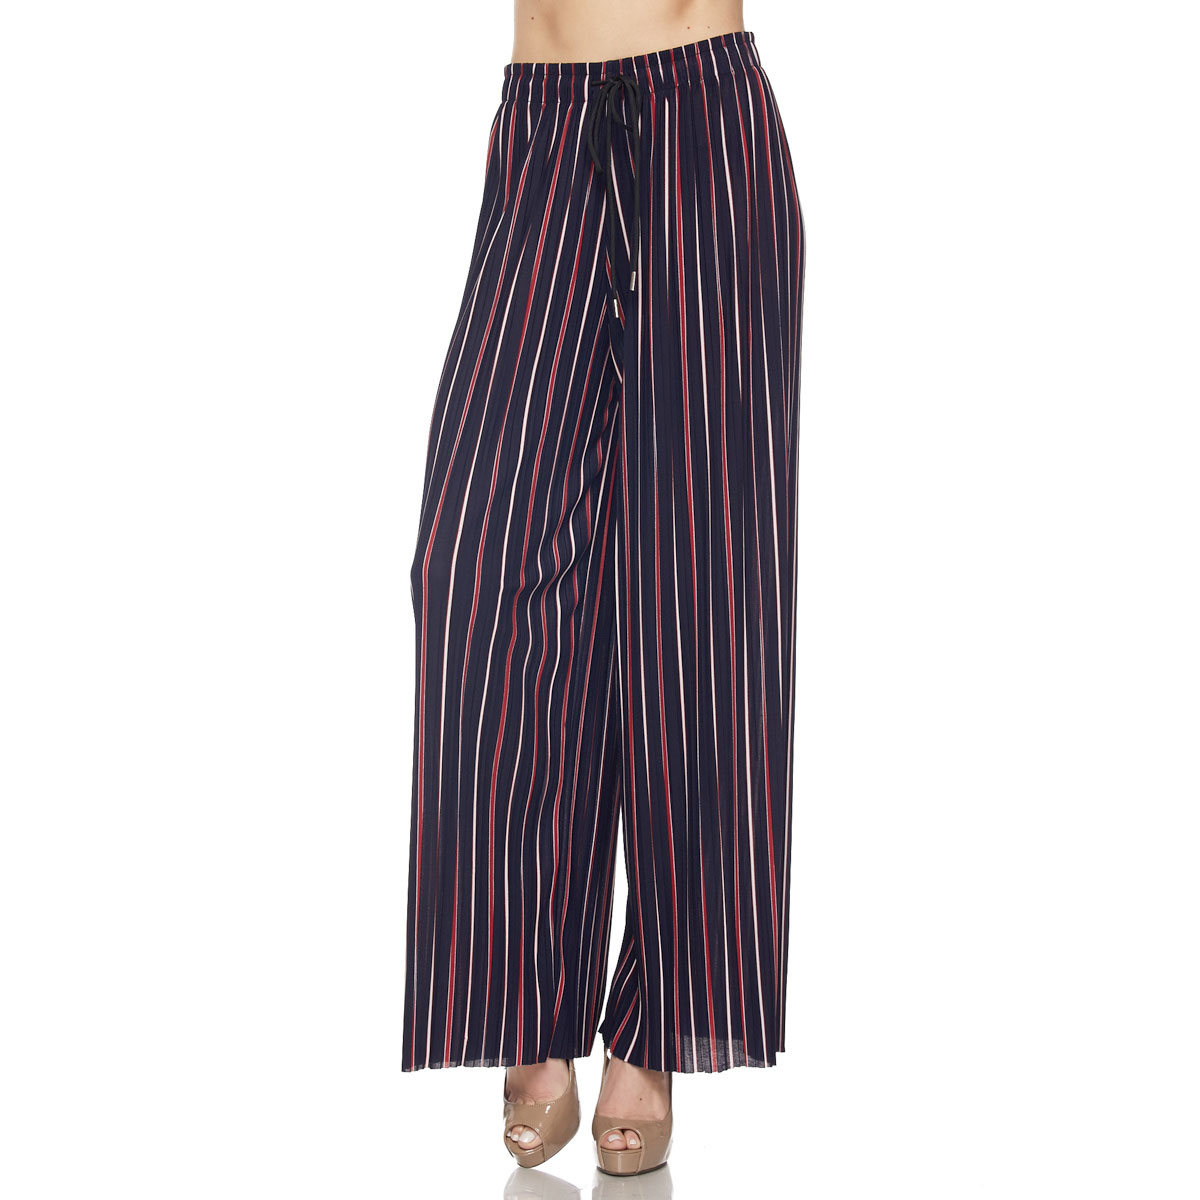 Pleated Wide Leg Pants - Georgette 902 - Ankle Length - #01 Navy-Red Striped w/ Drawstring